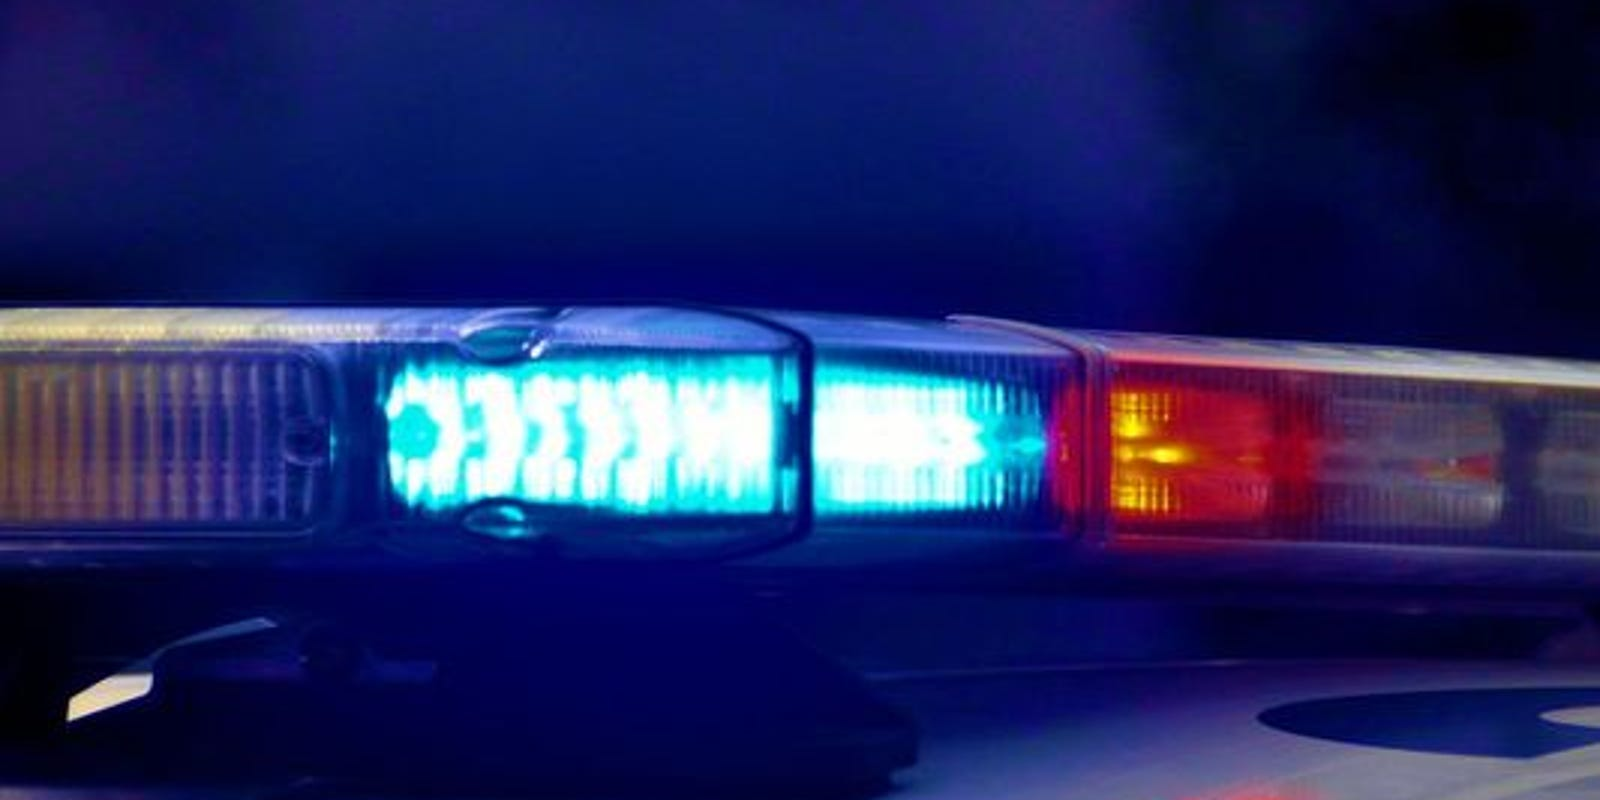 Motorcyclist killed in early morning crash in Greenville County